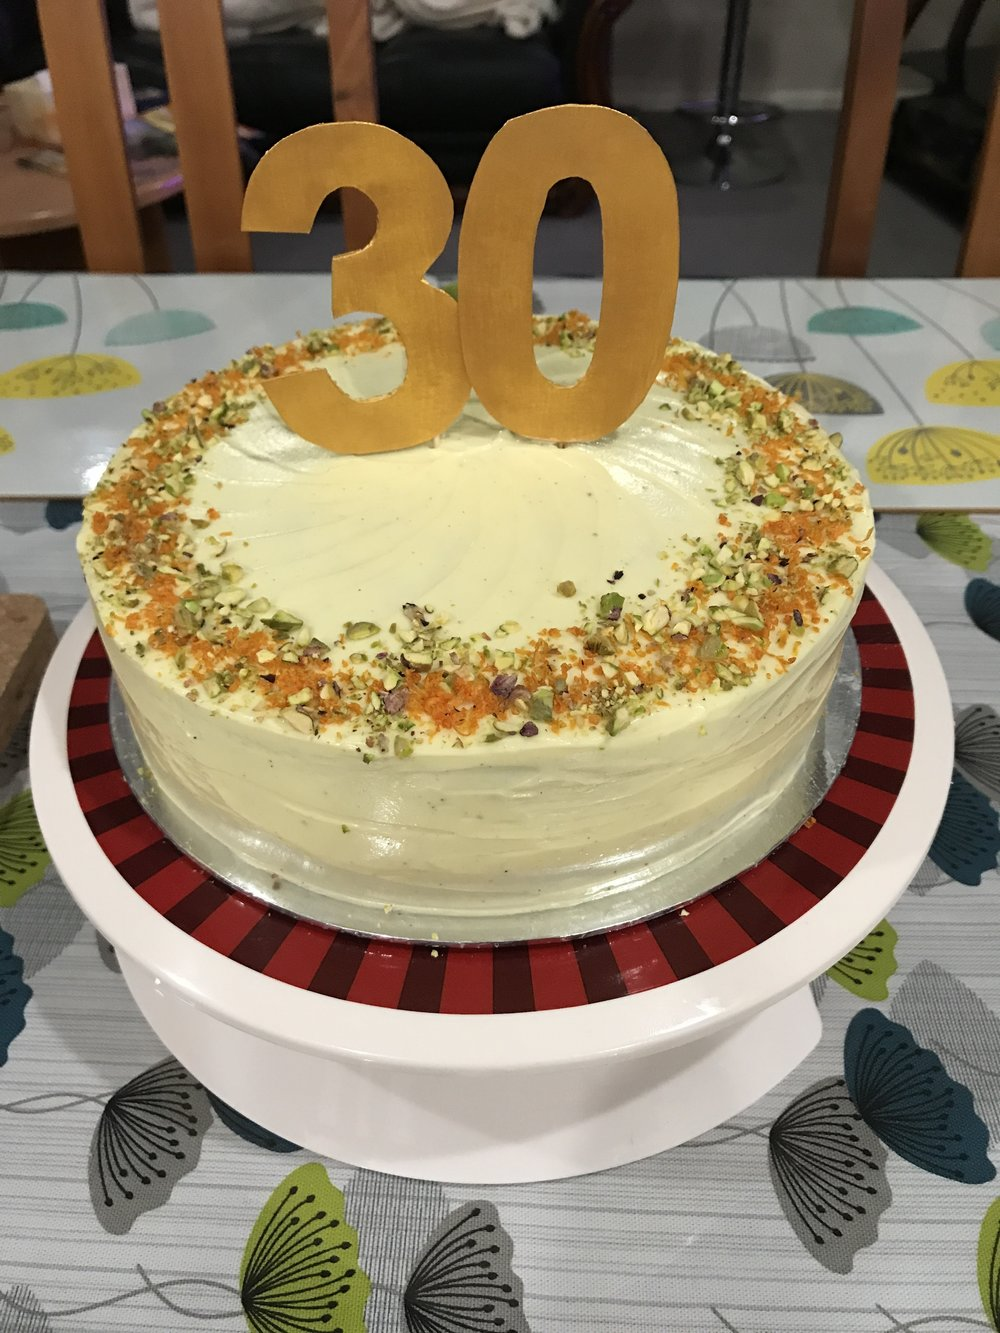 Carrot Cake - Single Layer - $45Double Layer - $65Spicy carrot cake with salted caramel cream cheese frosting.Decoration options - fresh flowers OR salted caramel drizzle with walnuts OR pistachios with orange zest